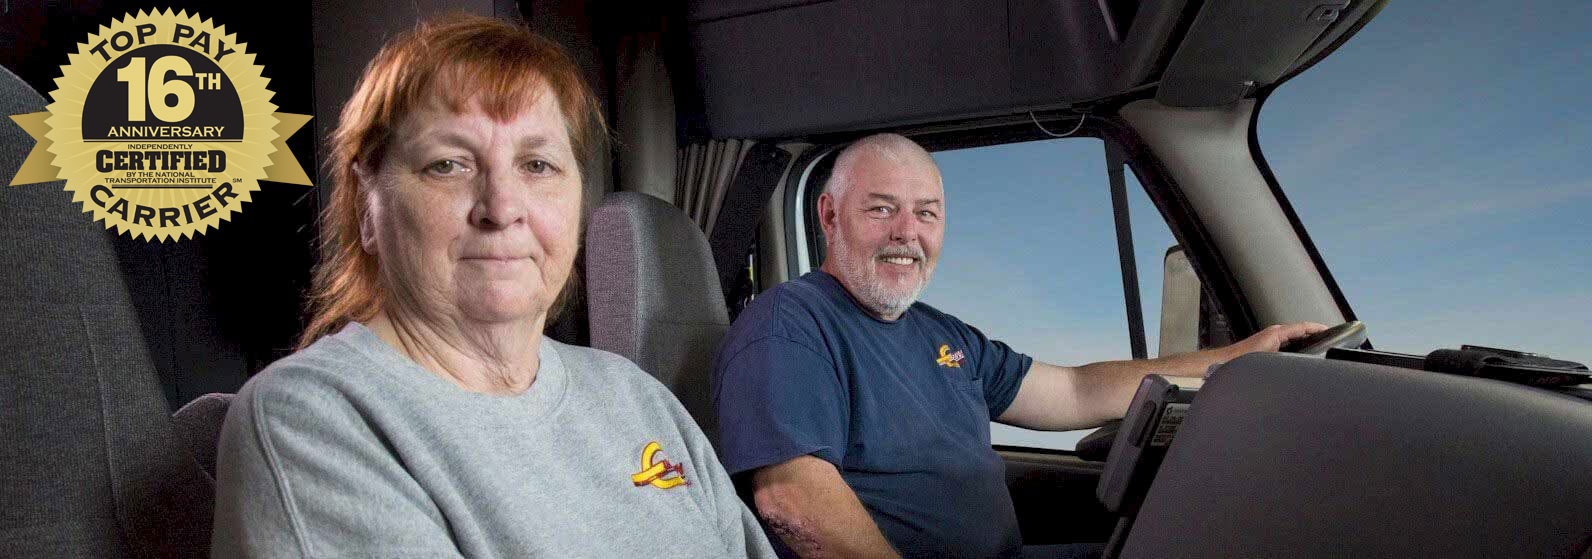 Barr-Nunn Team Truck Drivers in their truck with the Top Pay Certified Carrier logo